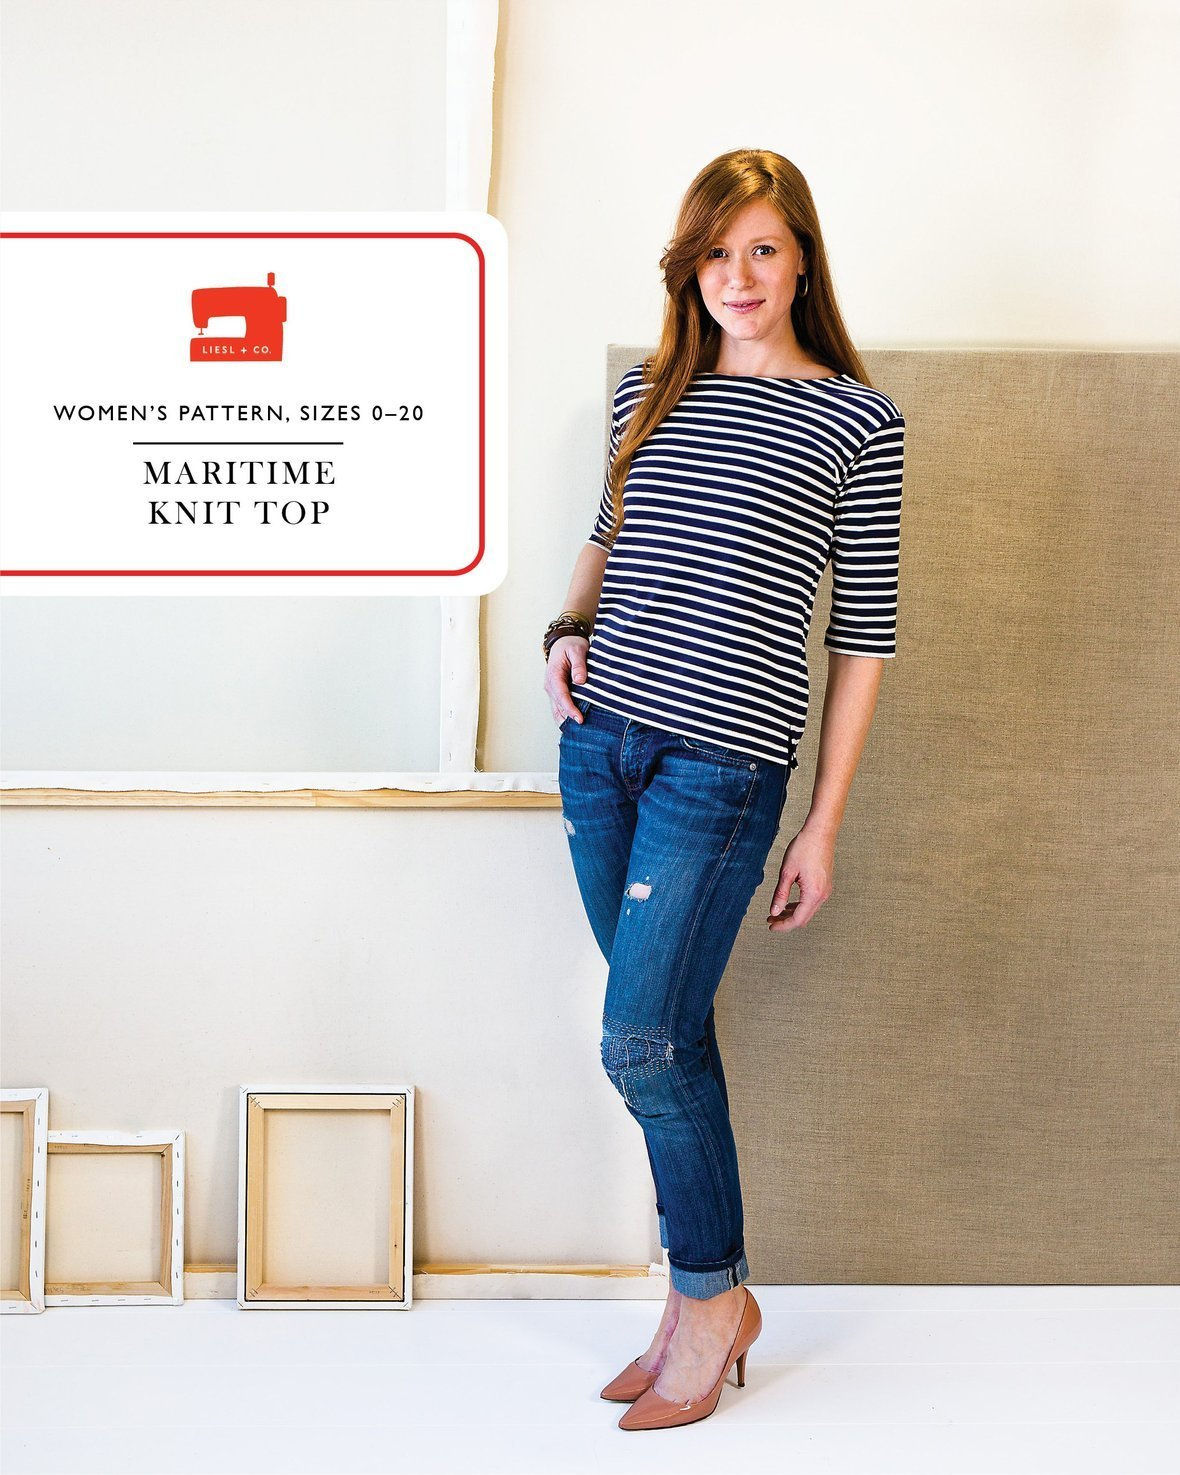 liesl and co  maritime knit top sewing pattern